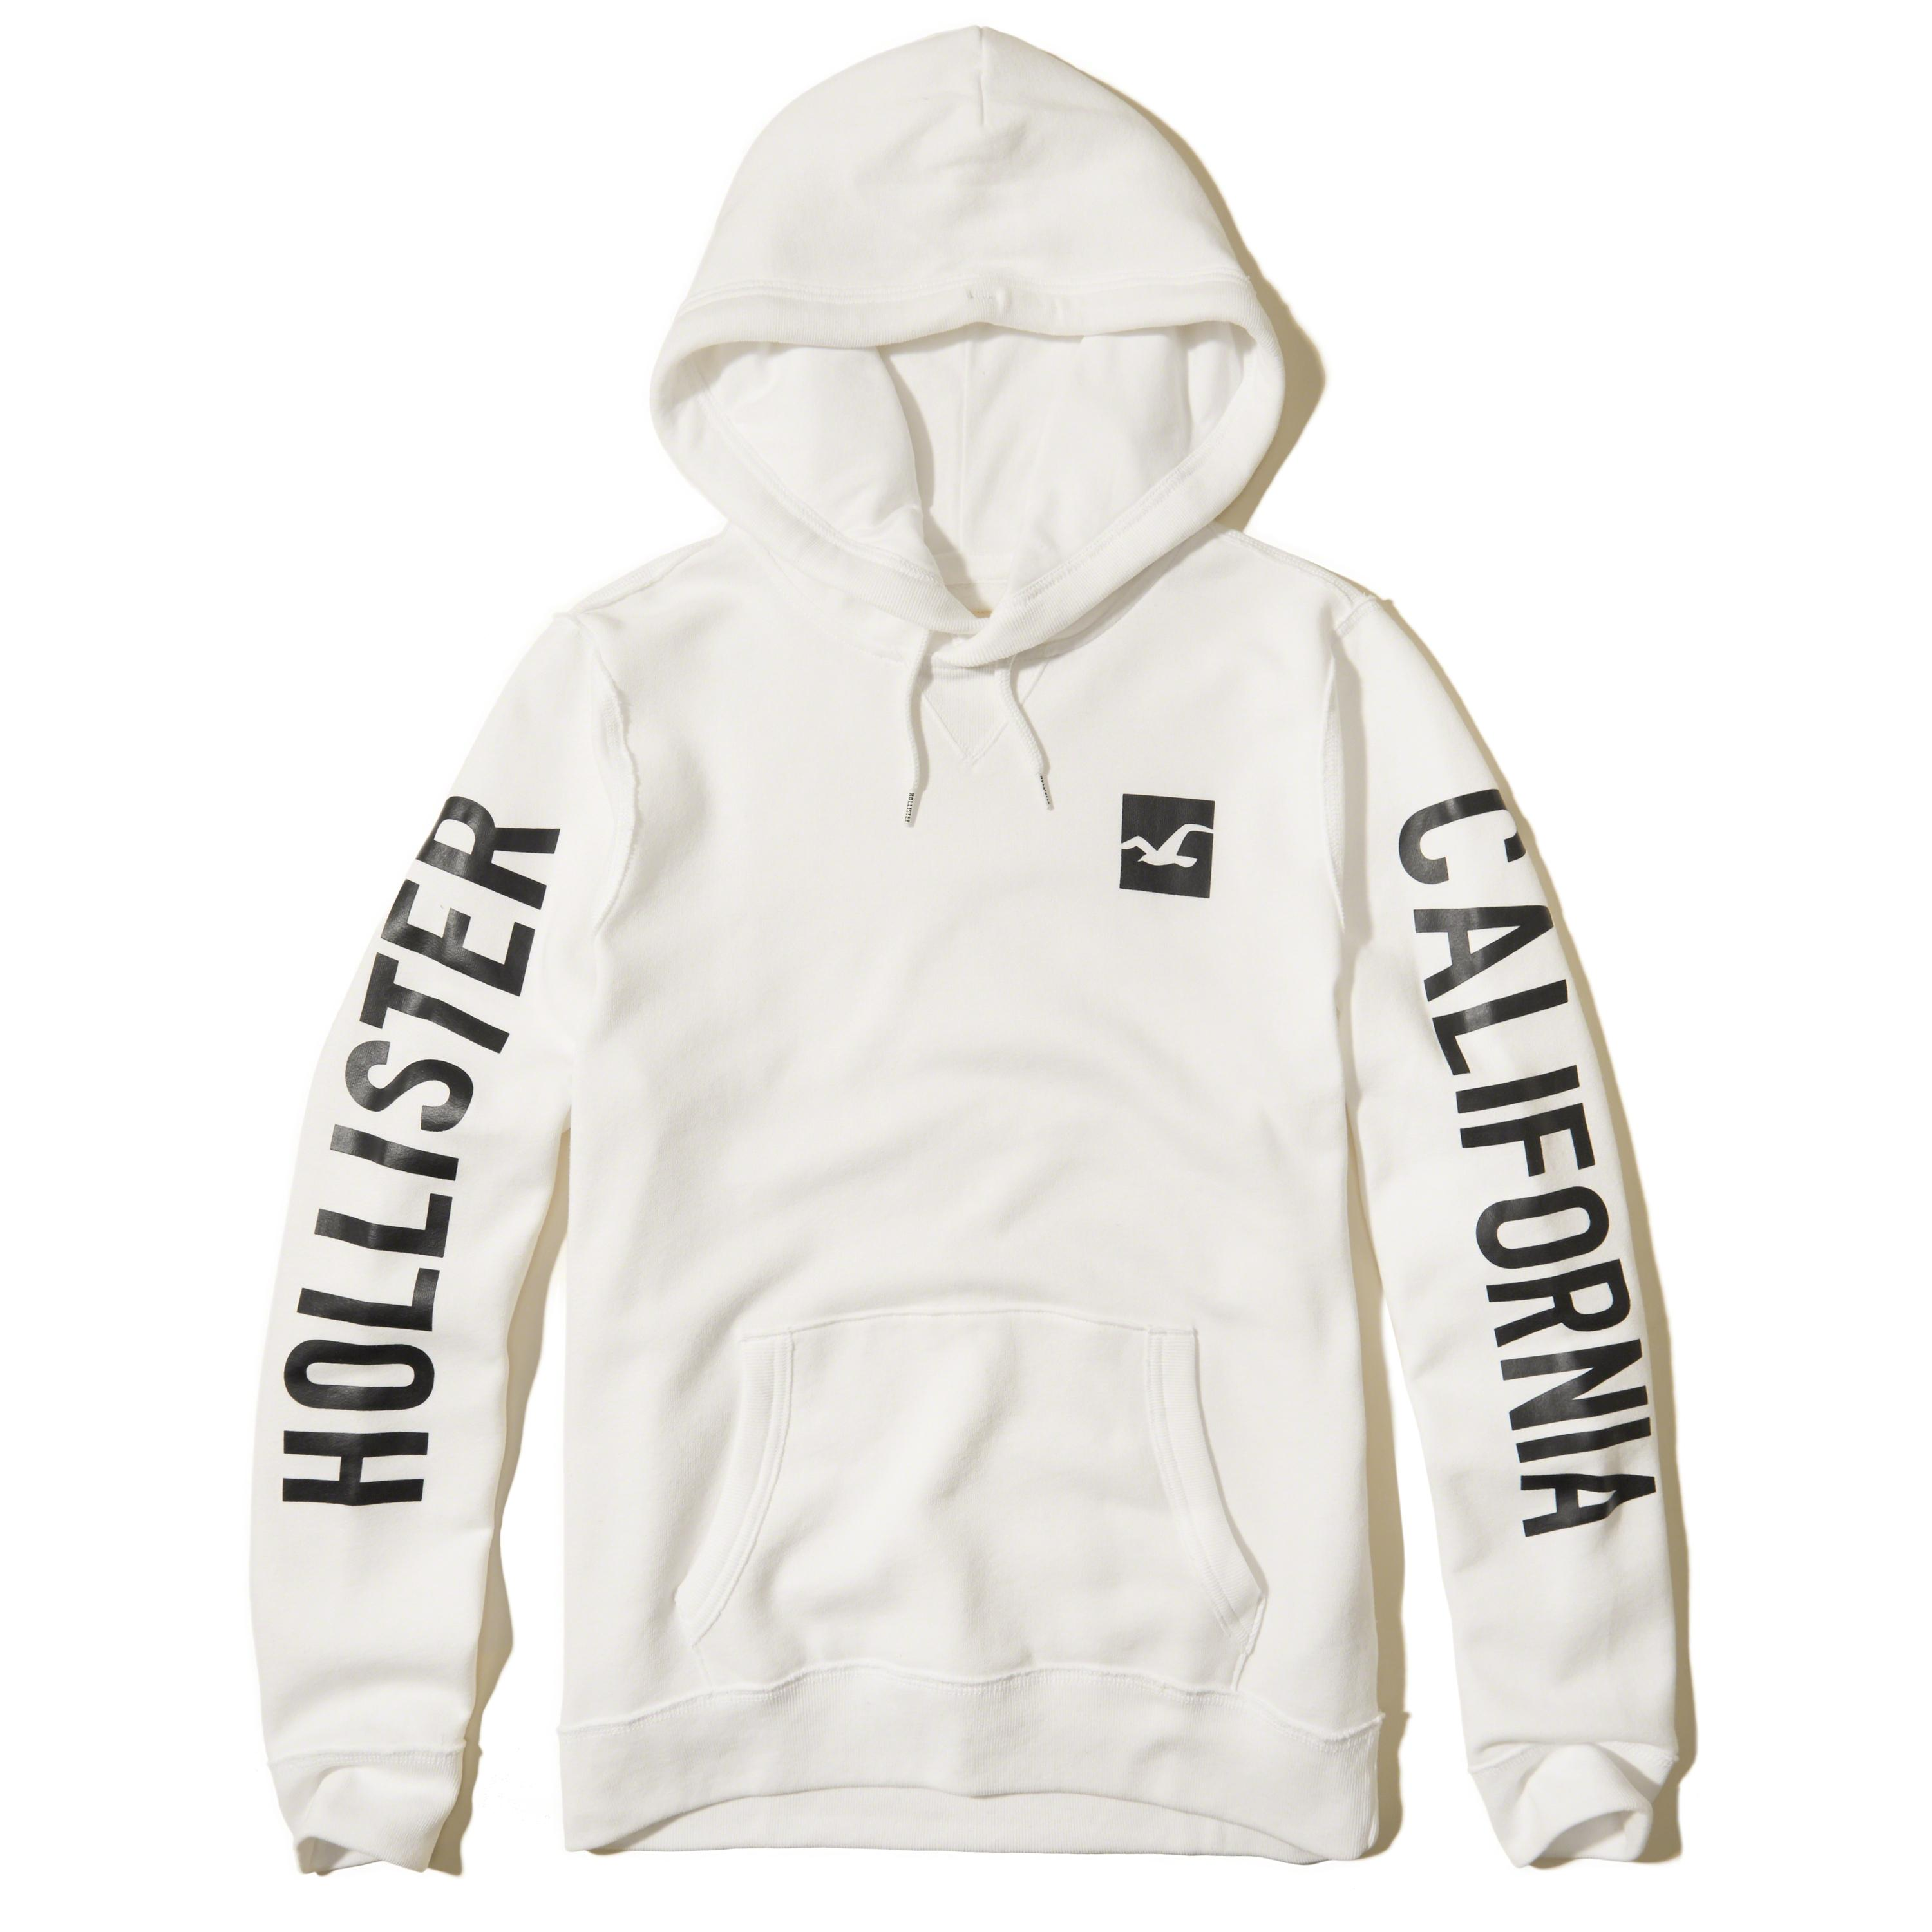 Hollister Sweaters Hollister Hoodies Hollister Shirts Hollister Jacket Hollister Pants Hollister Jeans: Hollister Printed Logo Graphic Hoodie In White For Men